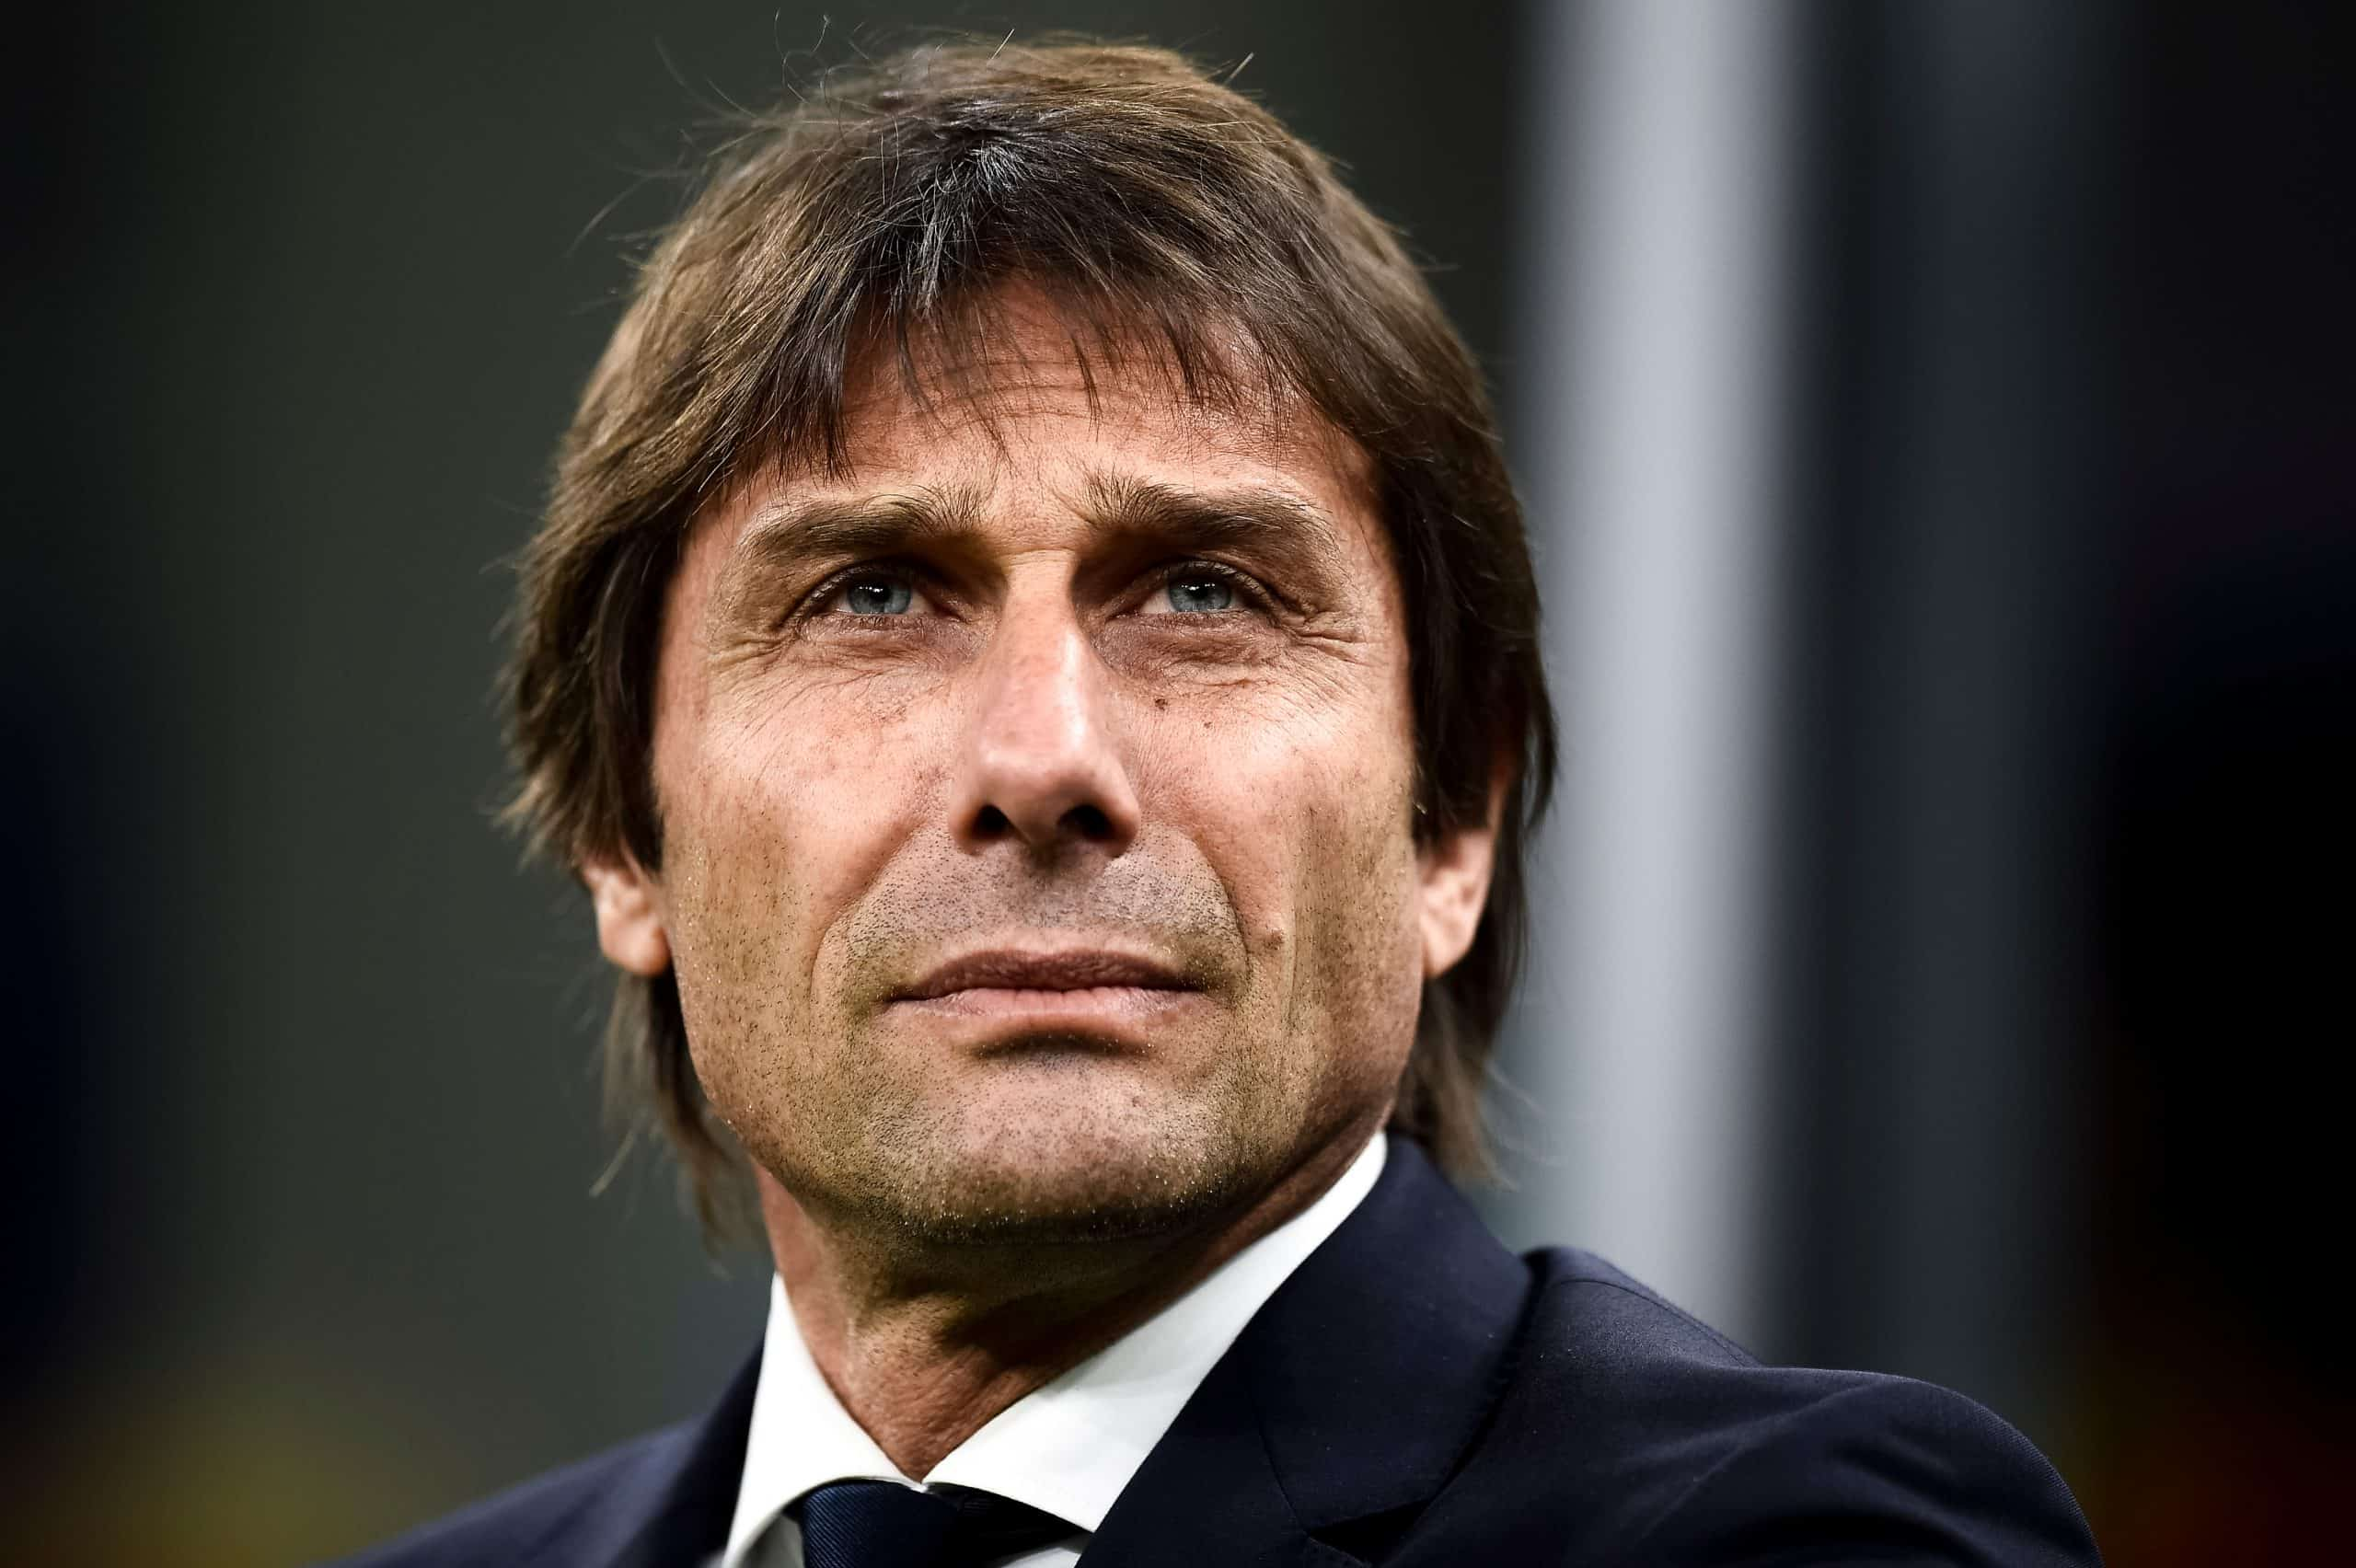 Antonio Conte before and after FUE2 hair transplant